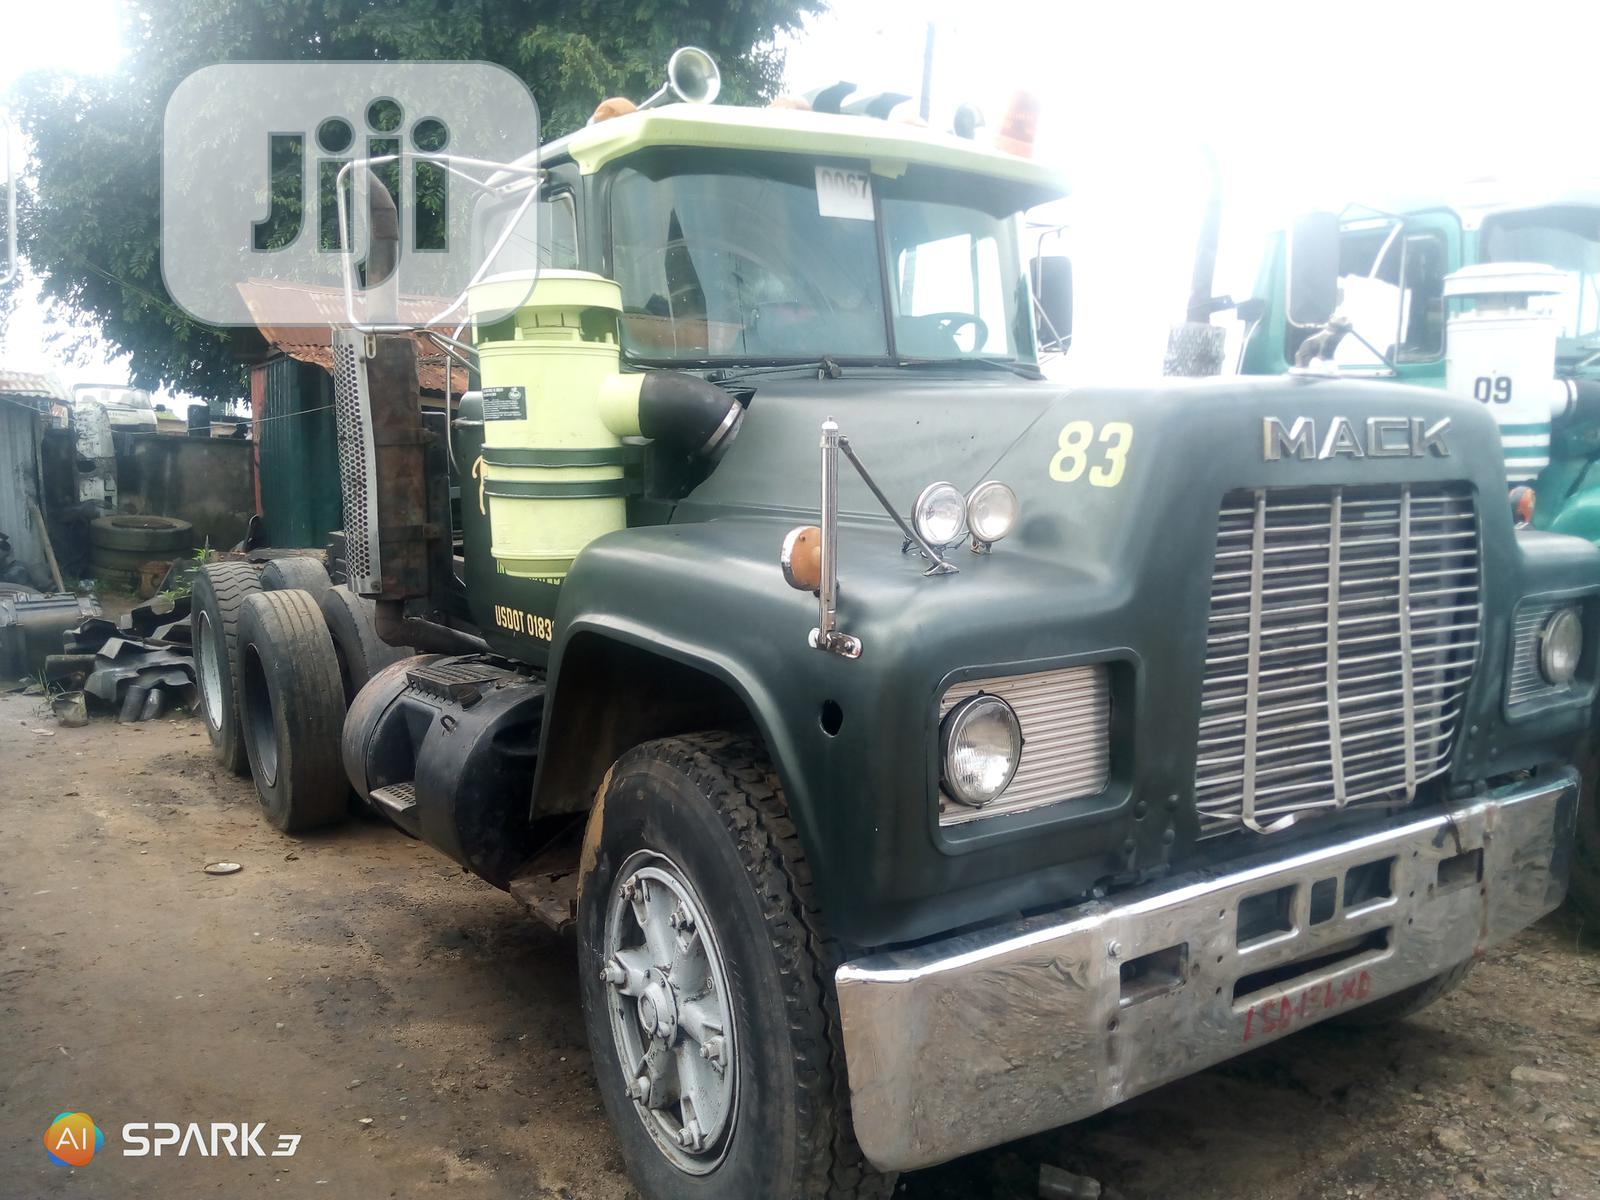 Mack Tractor Head 2009 Dark Green | Heavy Equipment for sale in Aba South, Abia State, Nigeria